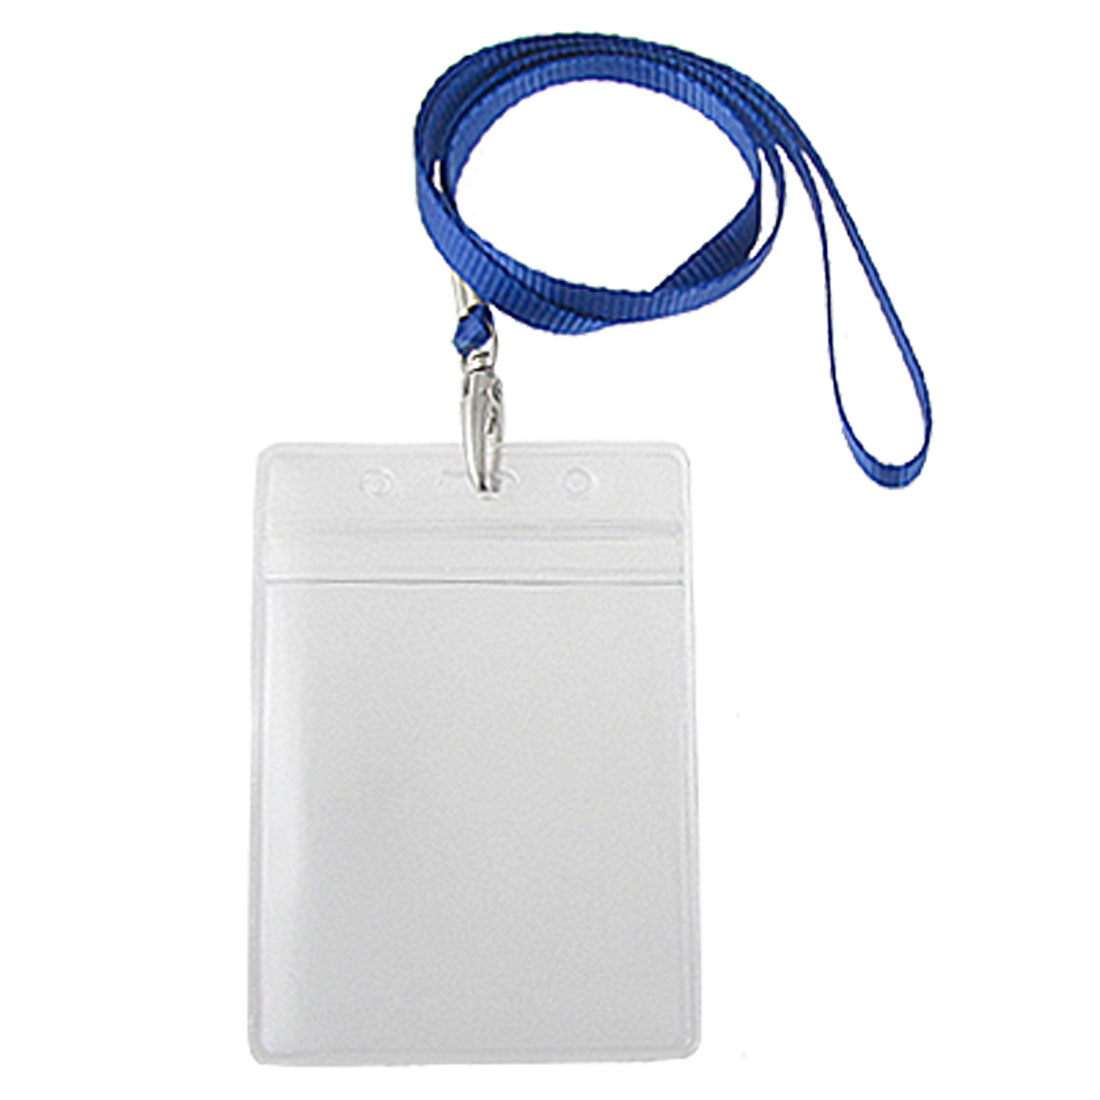 Water Resistant Vertical Exhibition Name Card Pouch Holders 2 Pcs